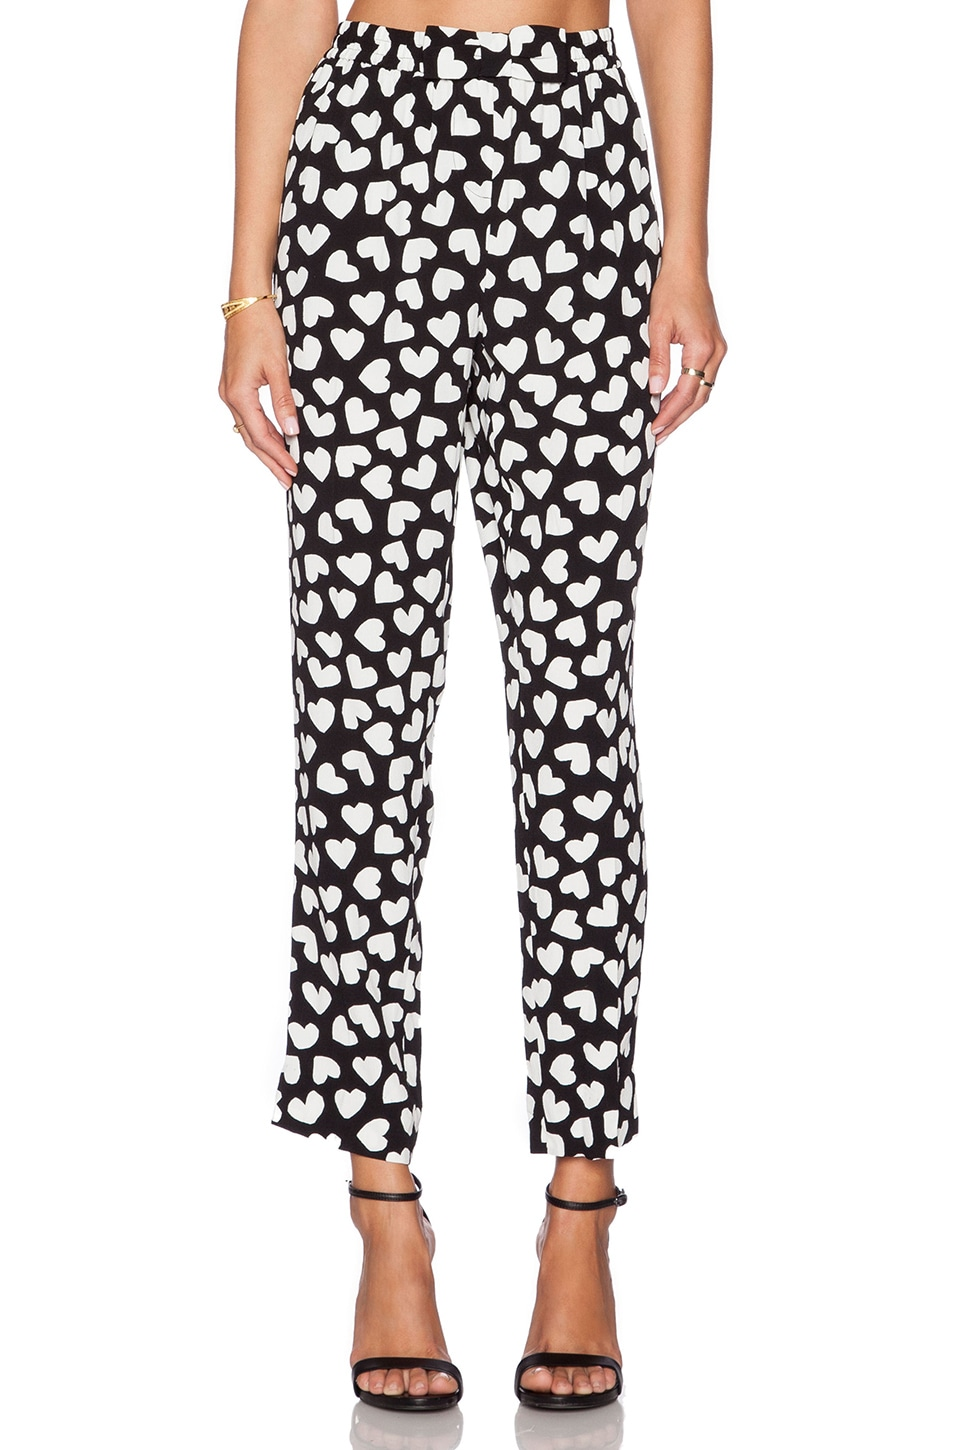 kate spade new york Dancing Hearts Ria Pant in Charcoal